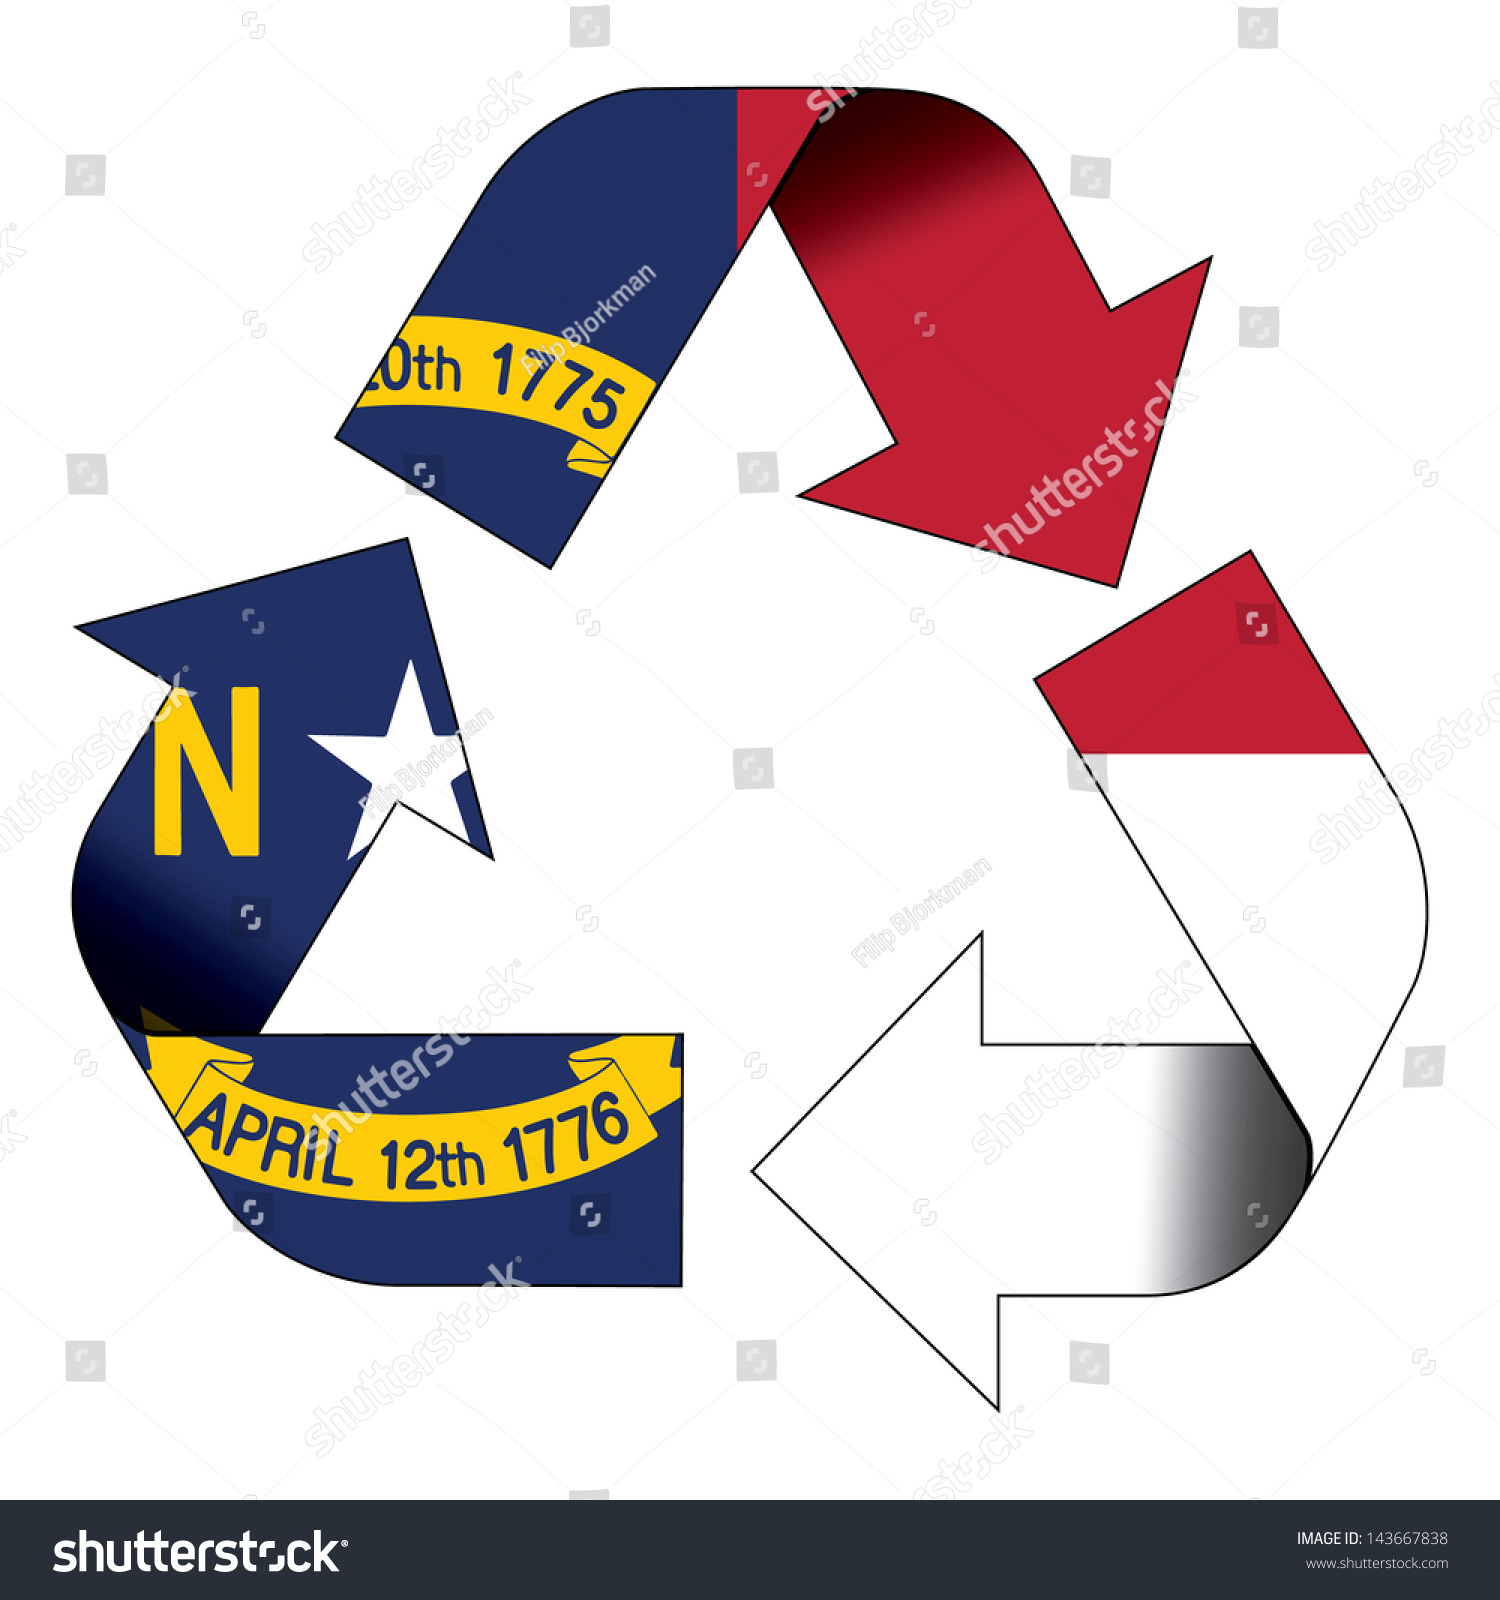 Recycle symbol flag north carolina stock illustration 143667838 recycle symbol flag of north carolina buycottarizona